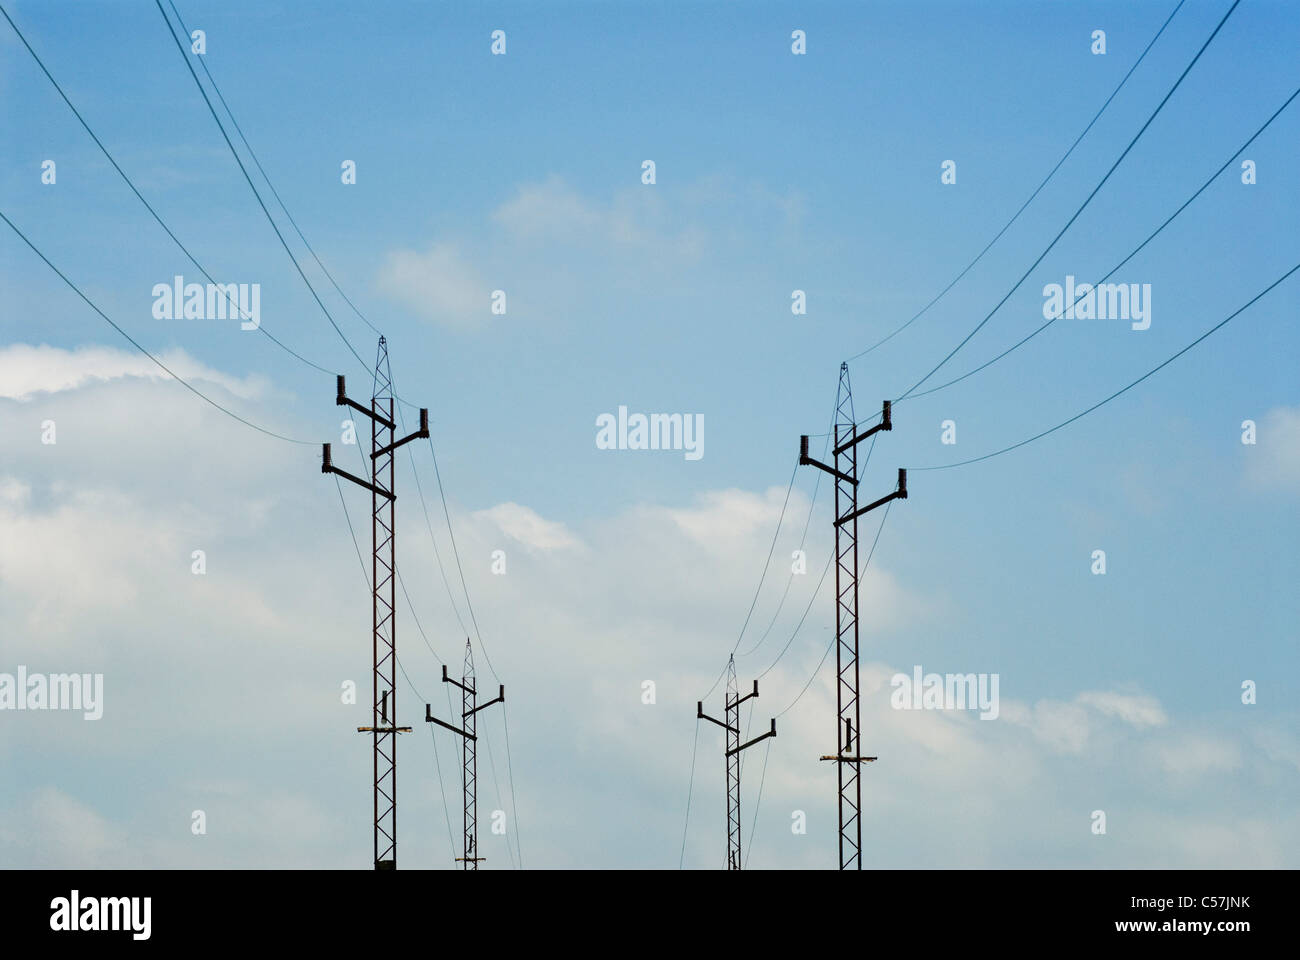 Power lines against blue sky - Stock Image